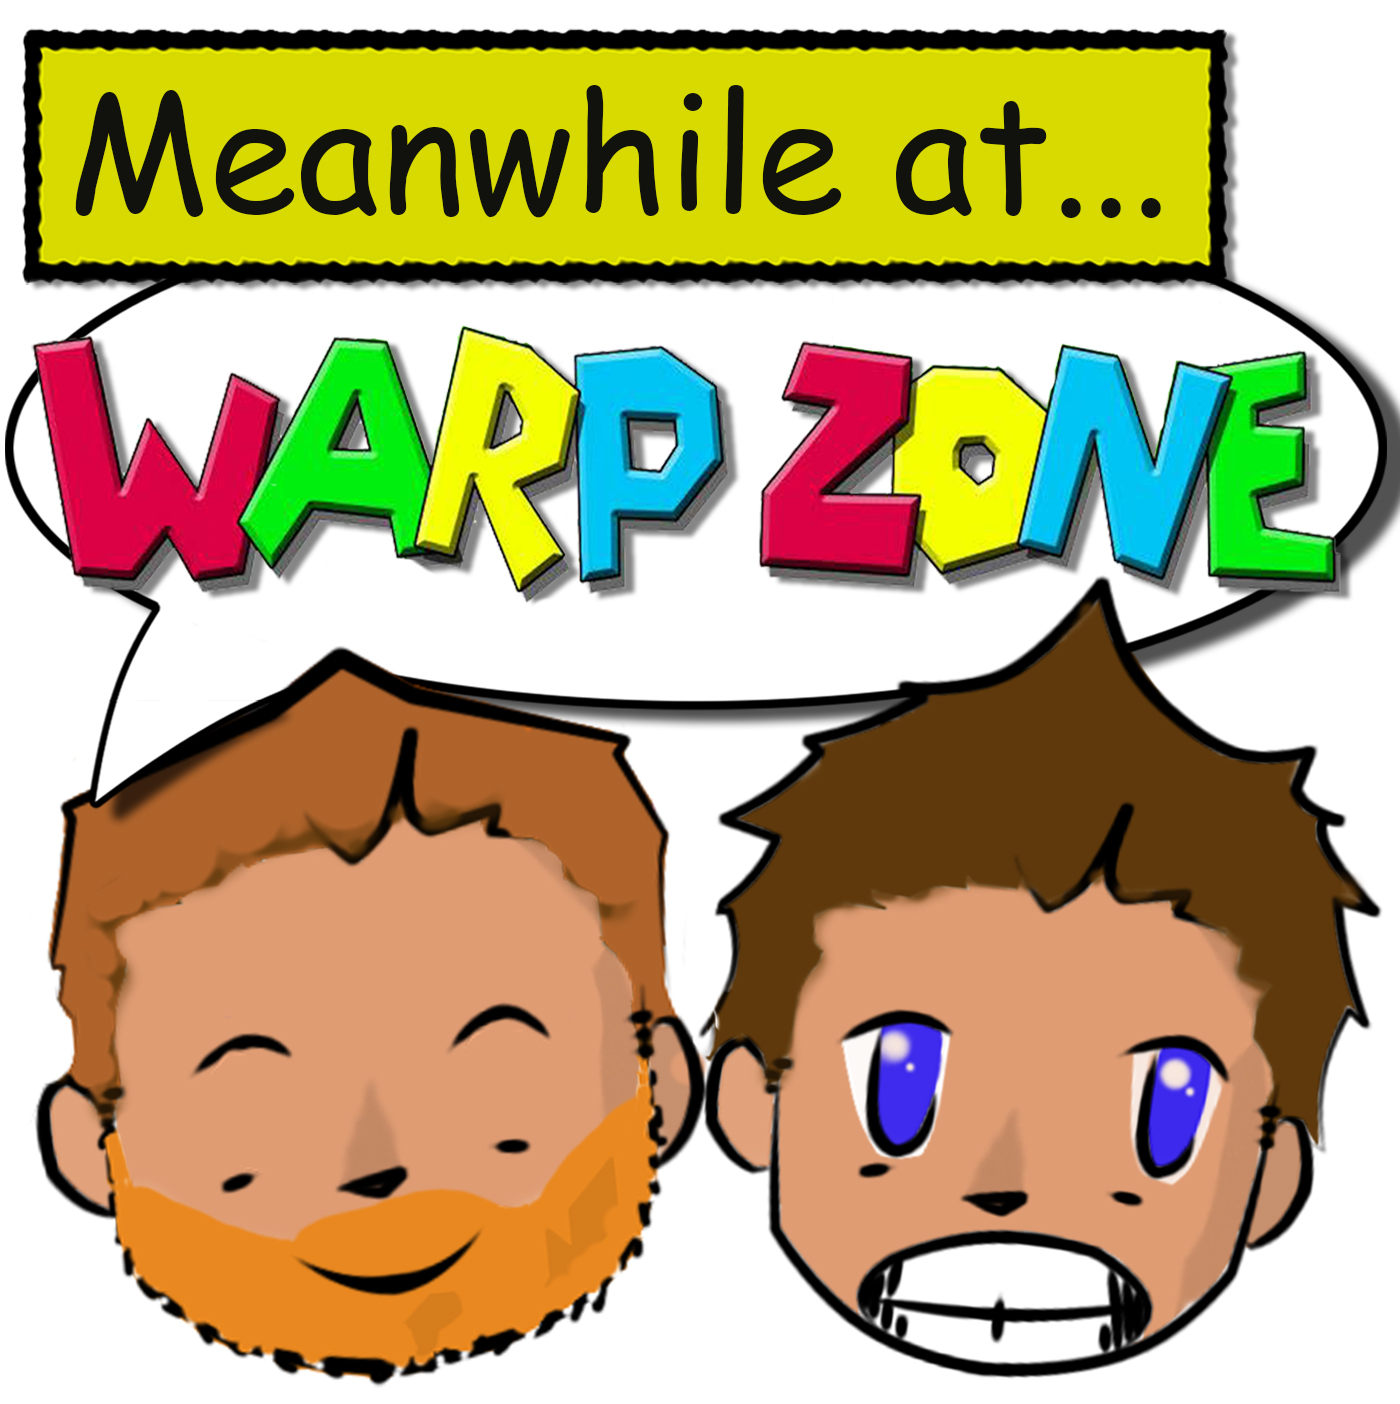 Meanwhile at Warp Zone